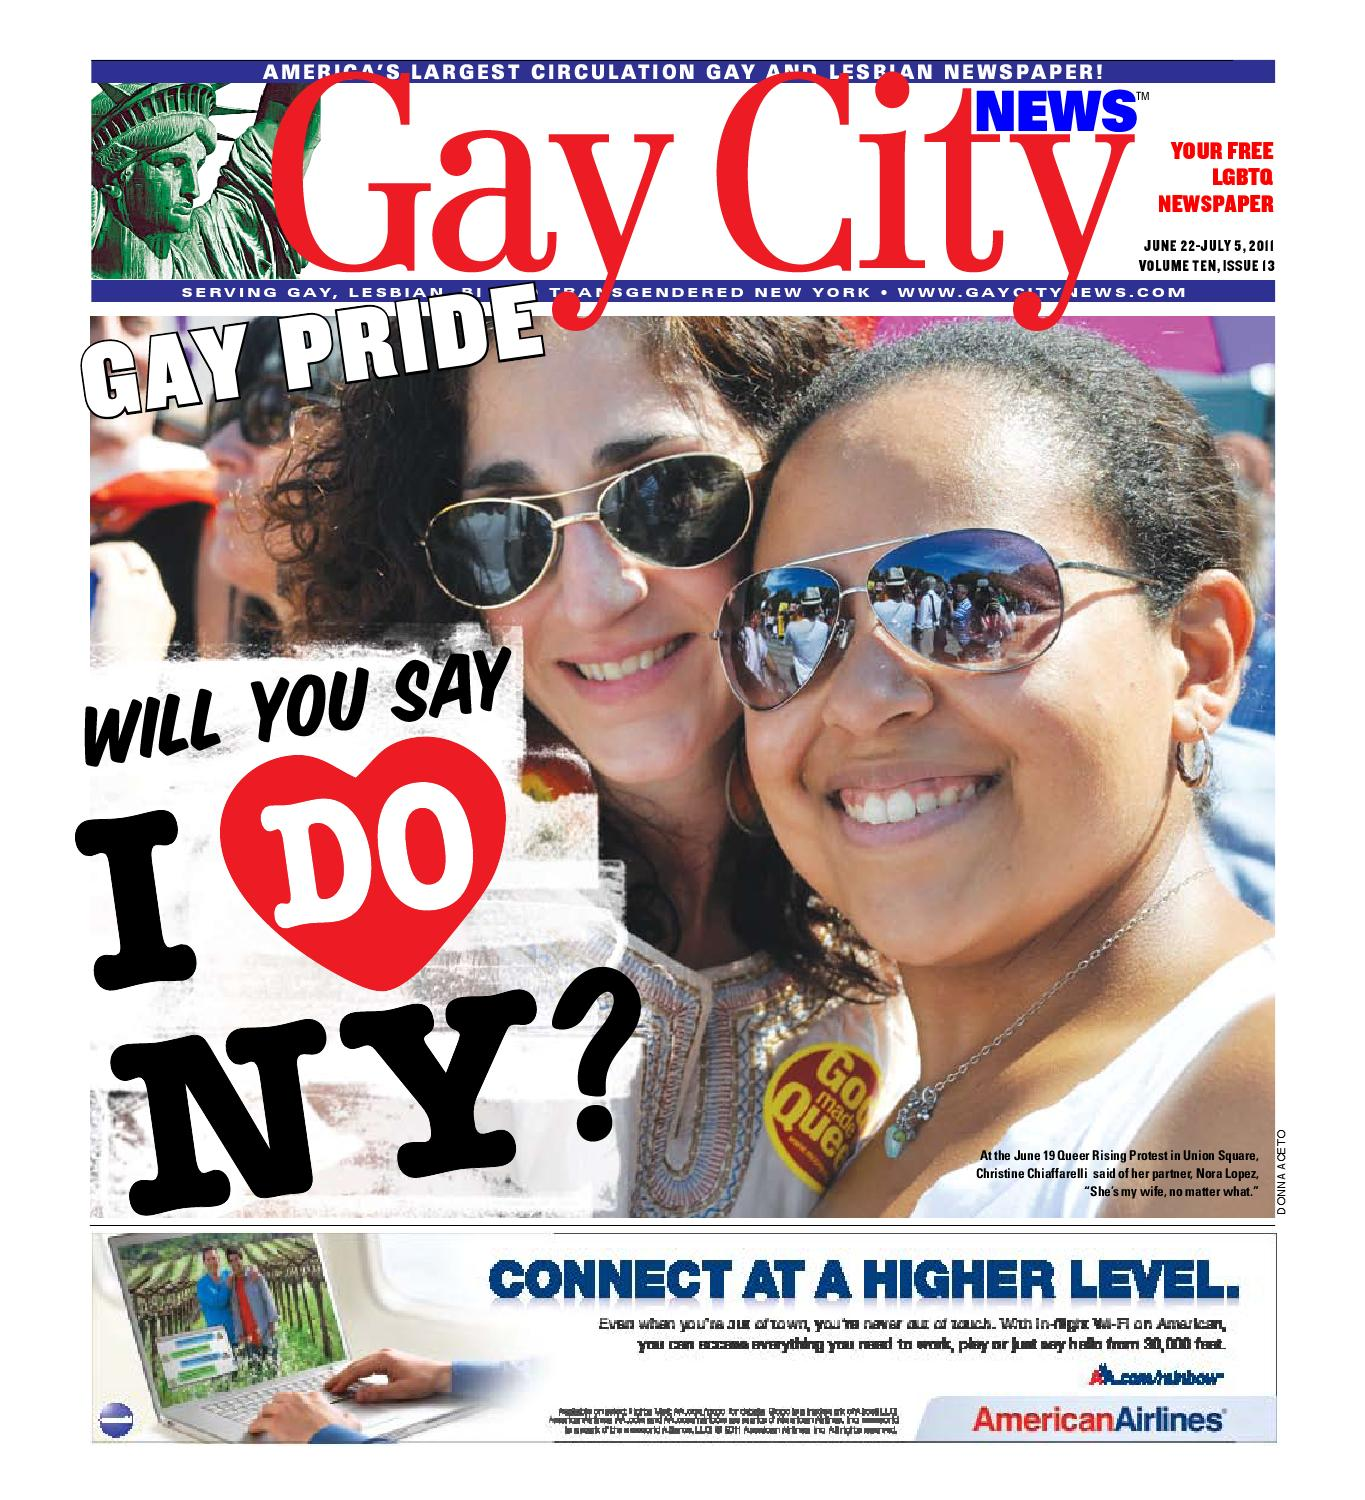 Gay City News 2011 Pride Issue By Schneps Media Issuu Eric schweig was born on june 19, 1967, in inuvik, northwest territories, canada. gay city news 2011 pride issue by